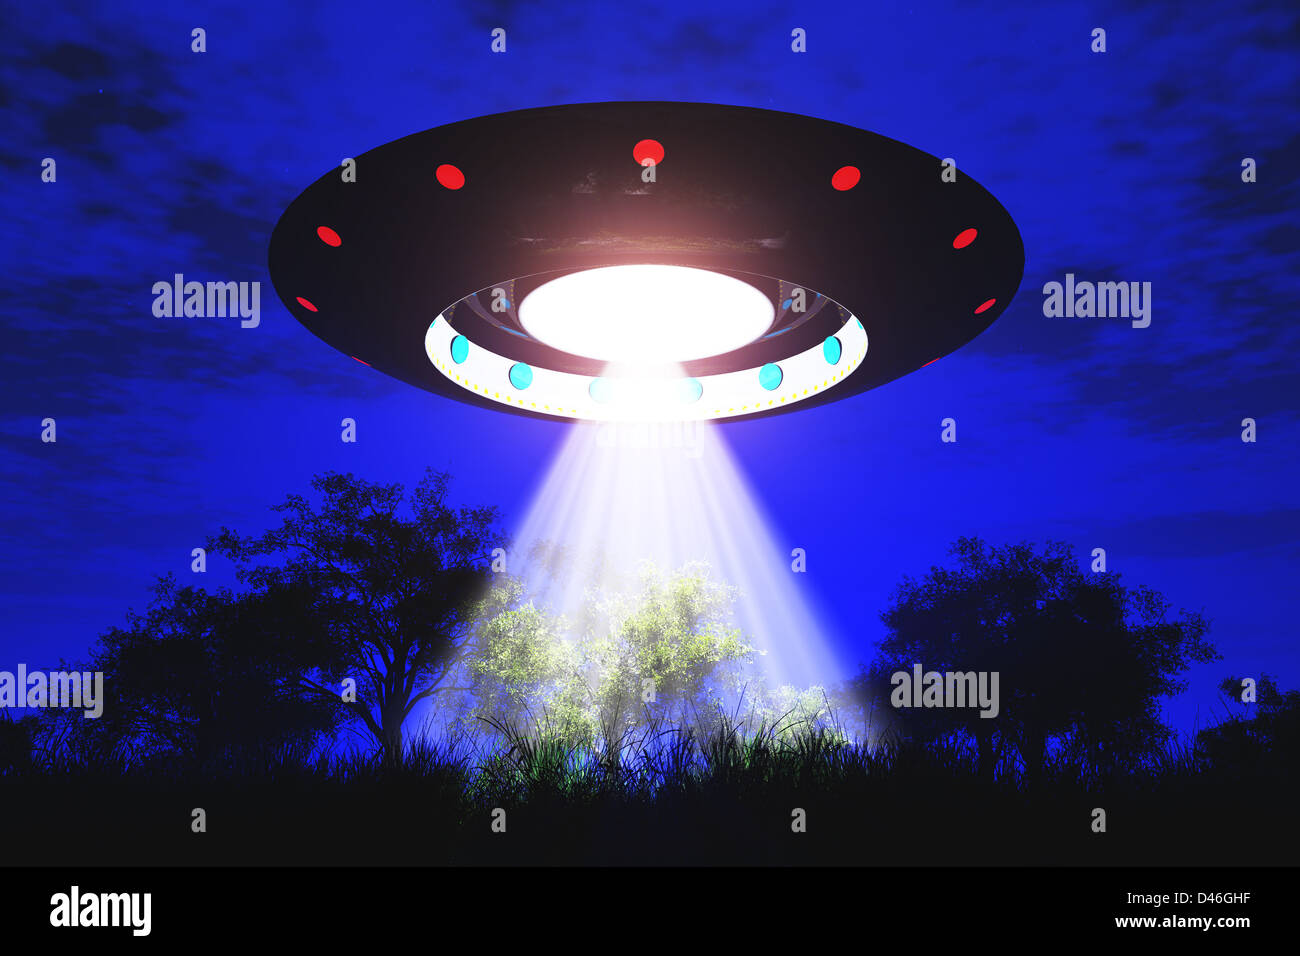 Ufo Flying on Earth at Night over Field - Stock Image